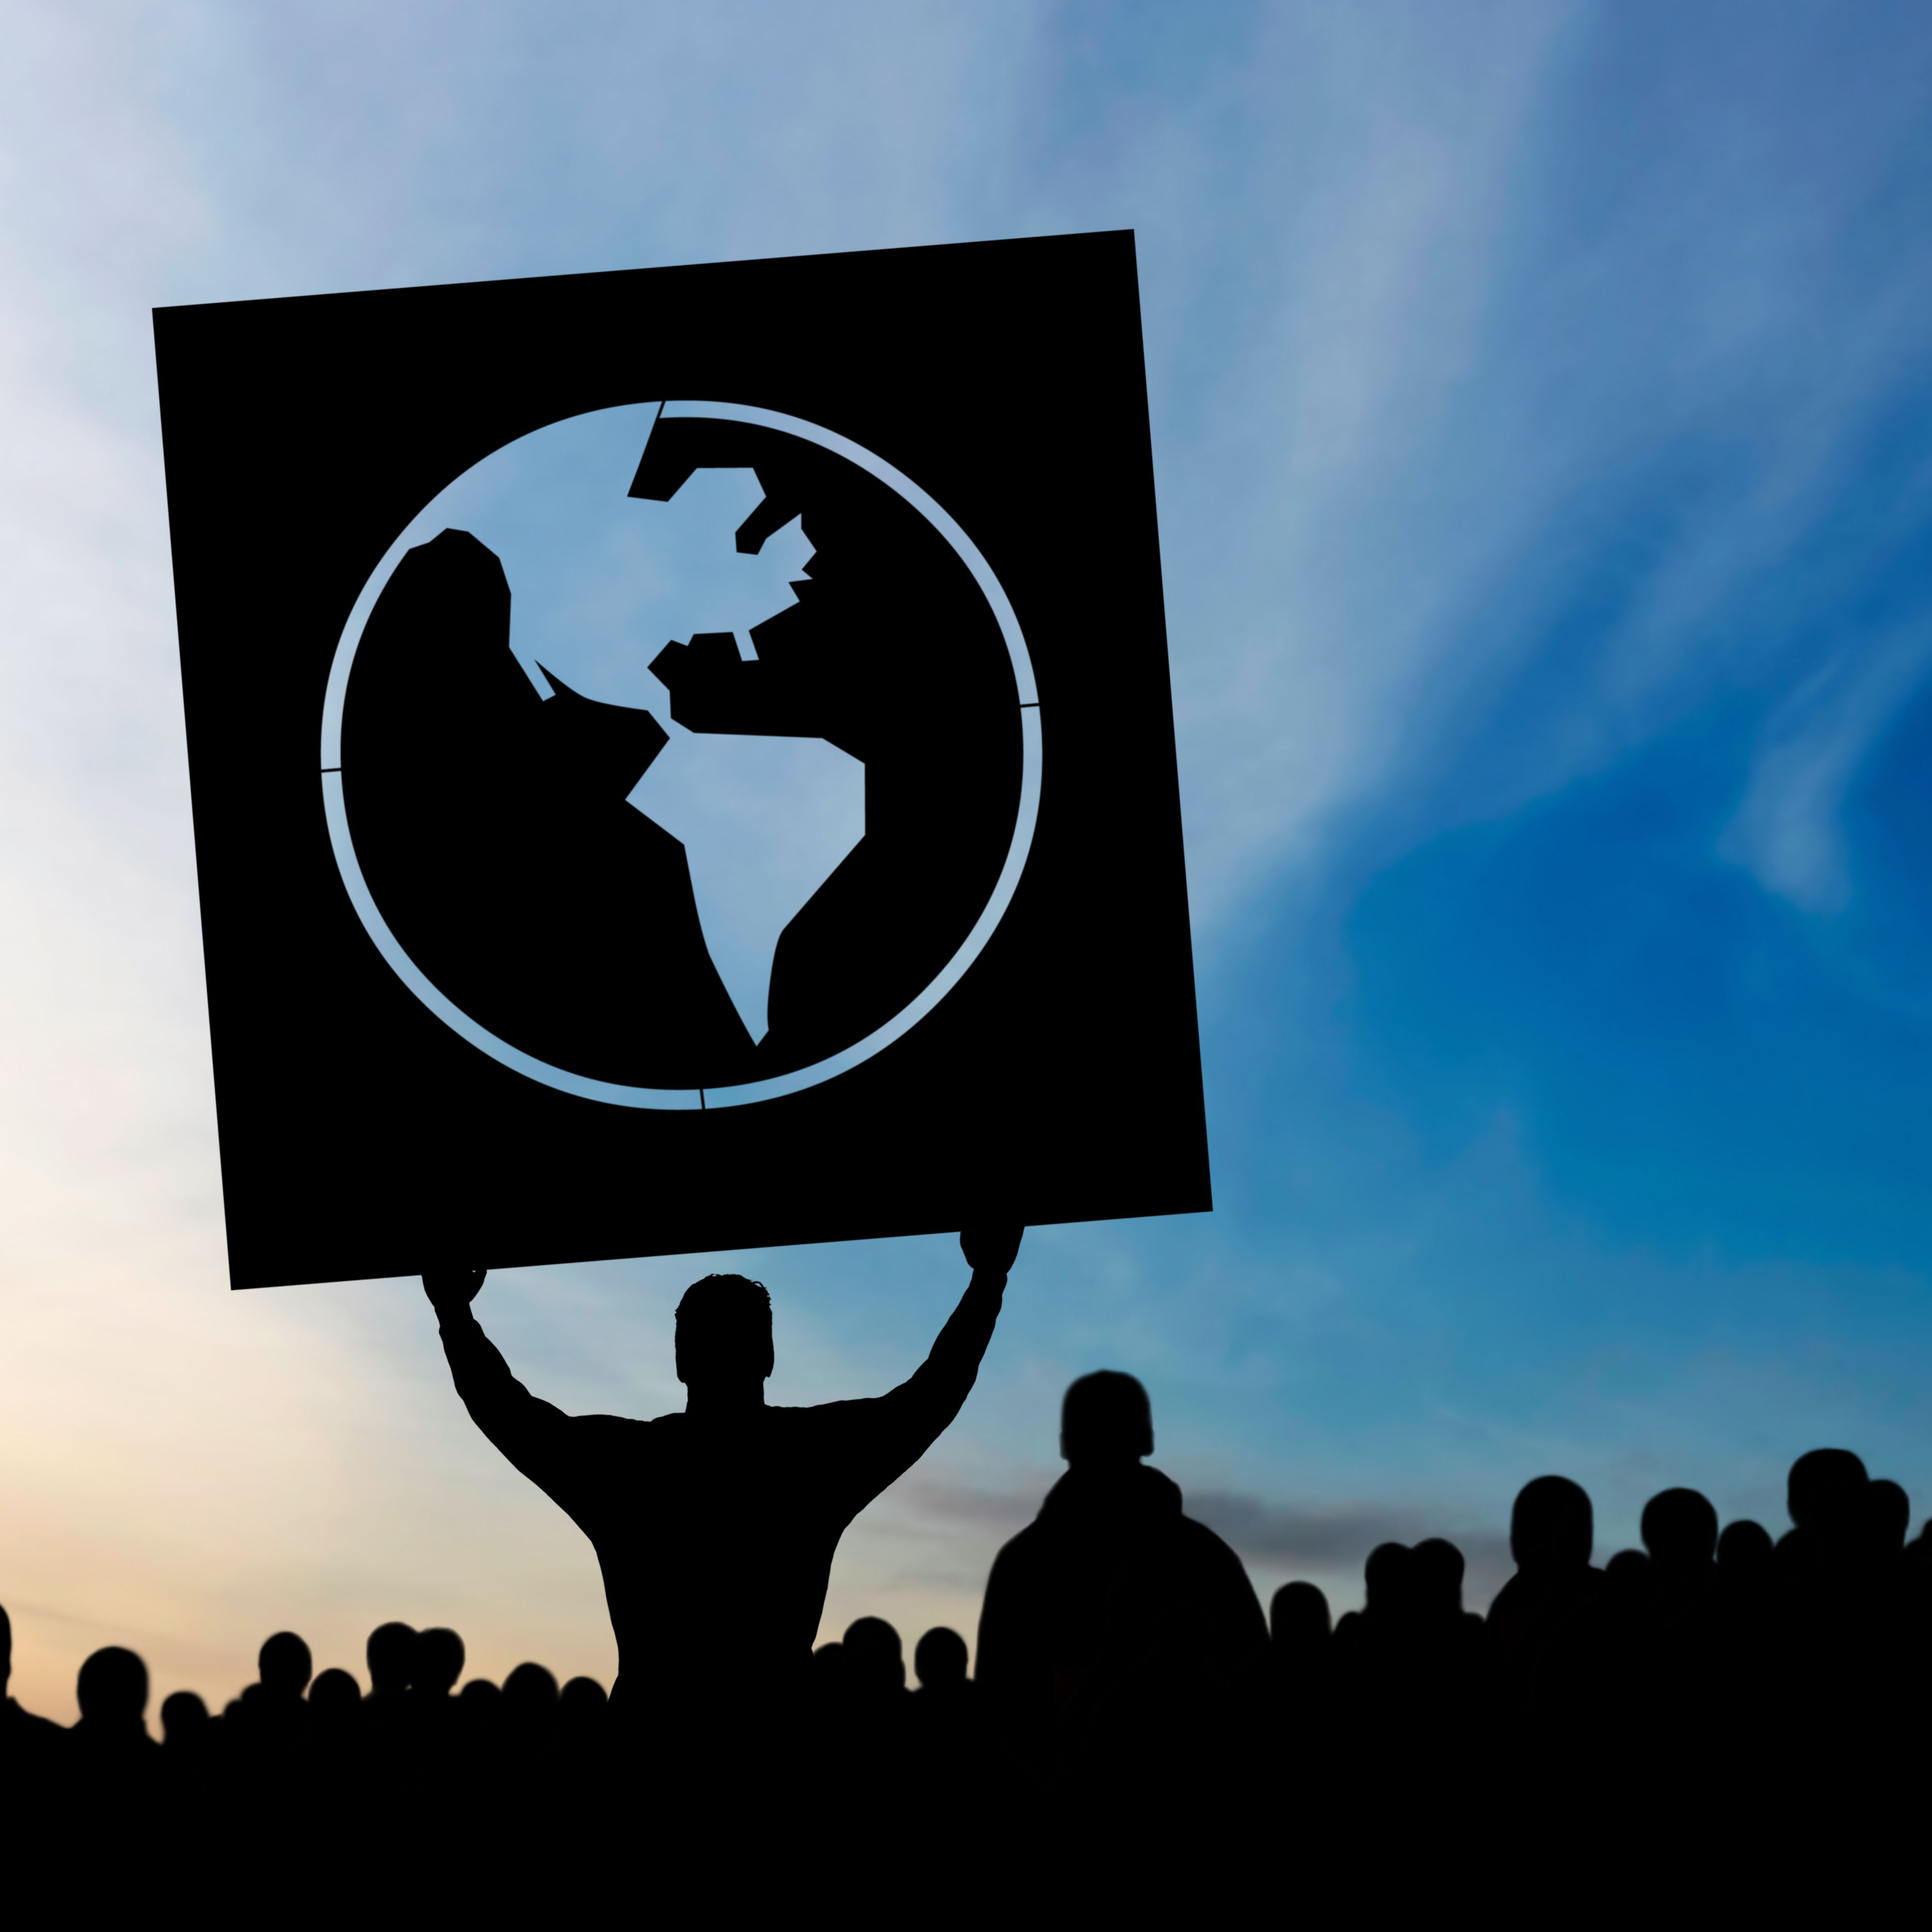 The Globalization of Capitalism